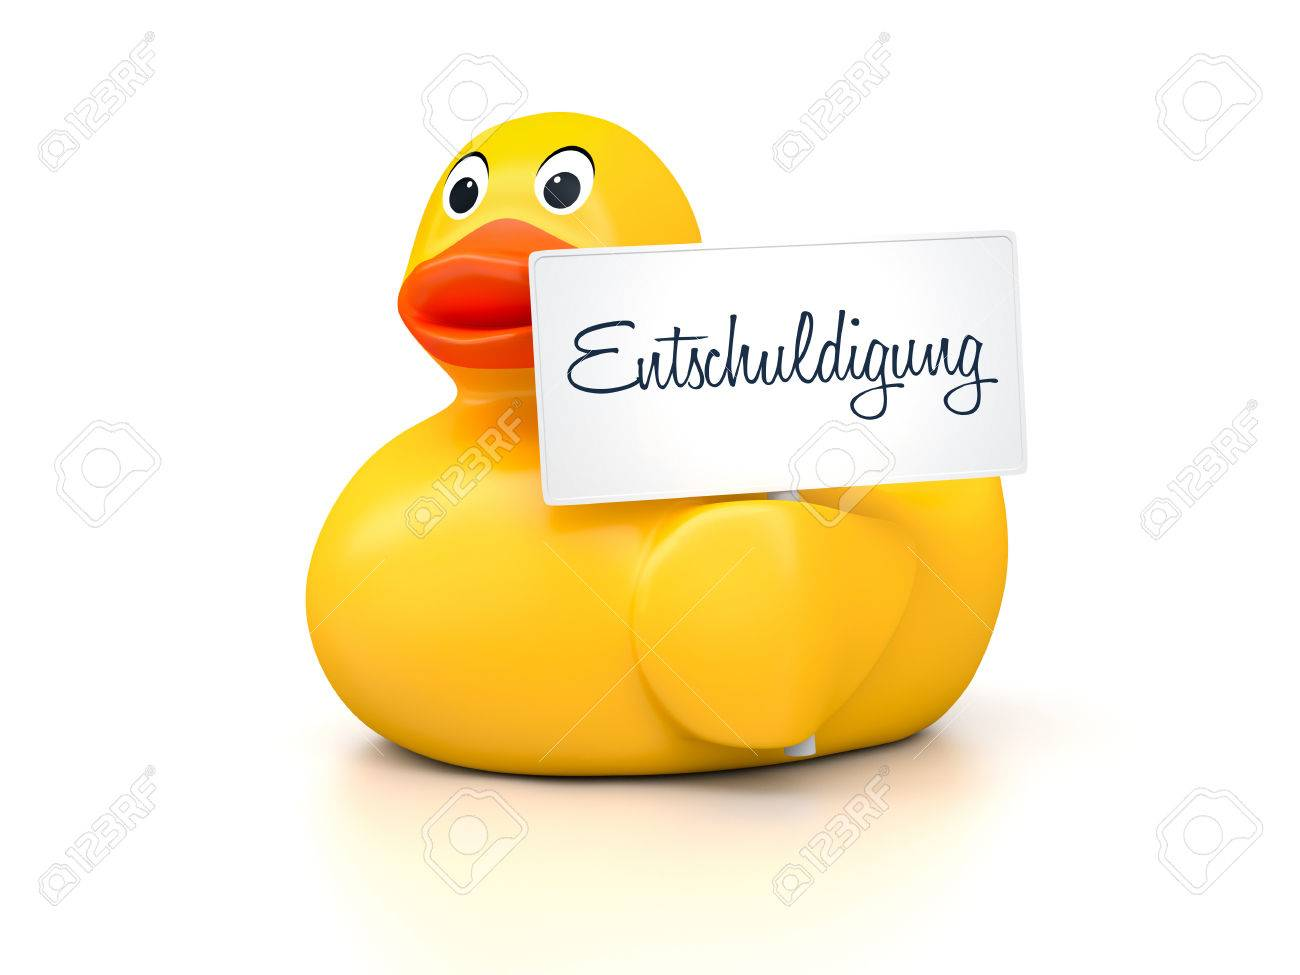 an image of a nice rubber duck with text sorry in german language